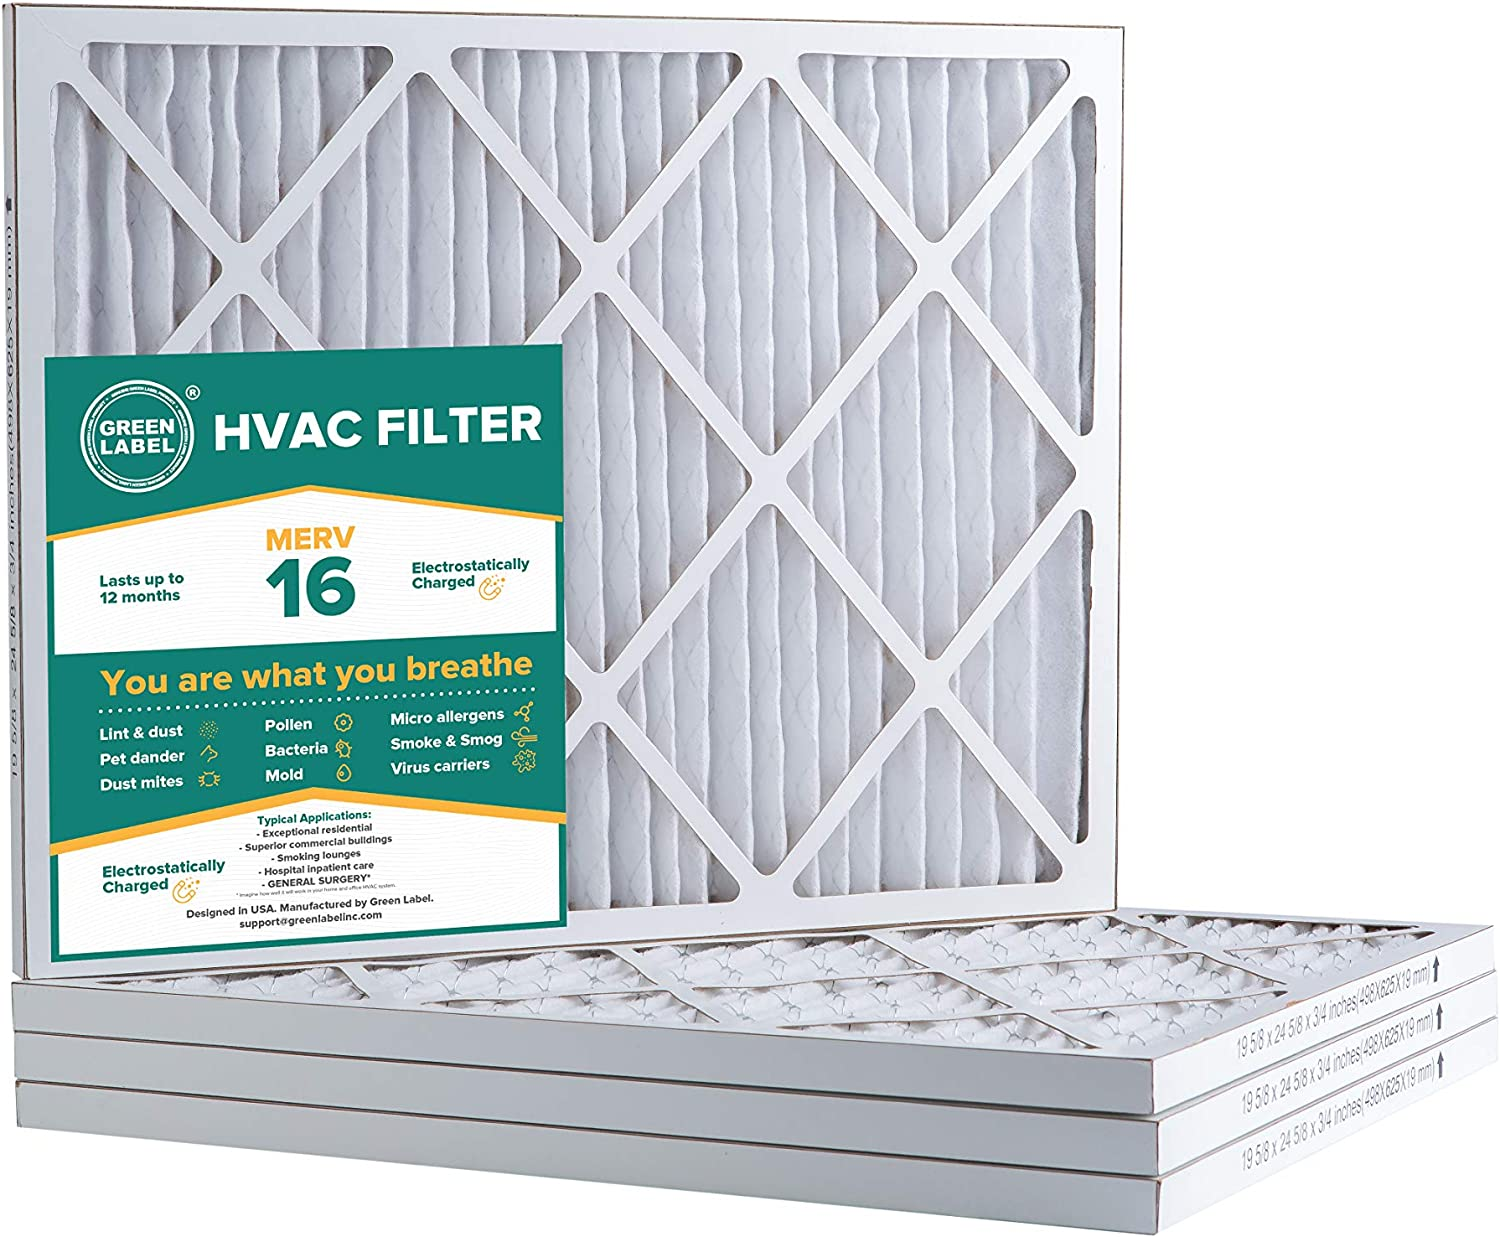 AC Furnace Air Ultra Cleaning Filter MERV 16 Green Label HVAC Air Filter 20x25x1 Pack of 4